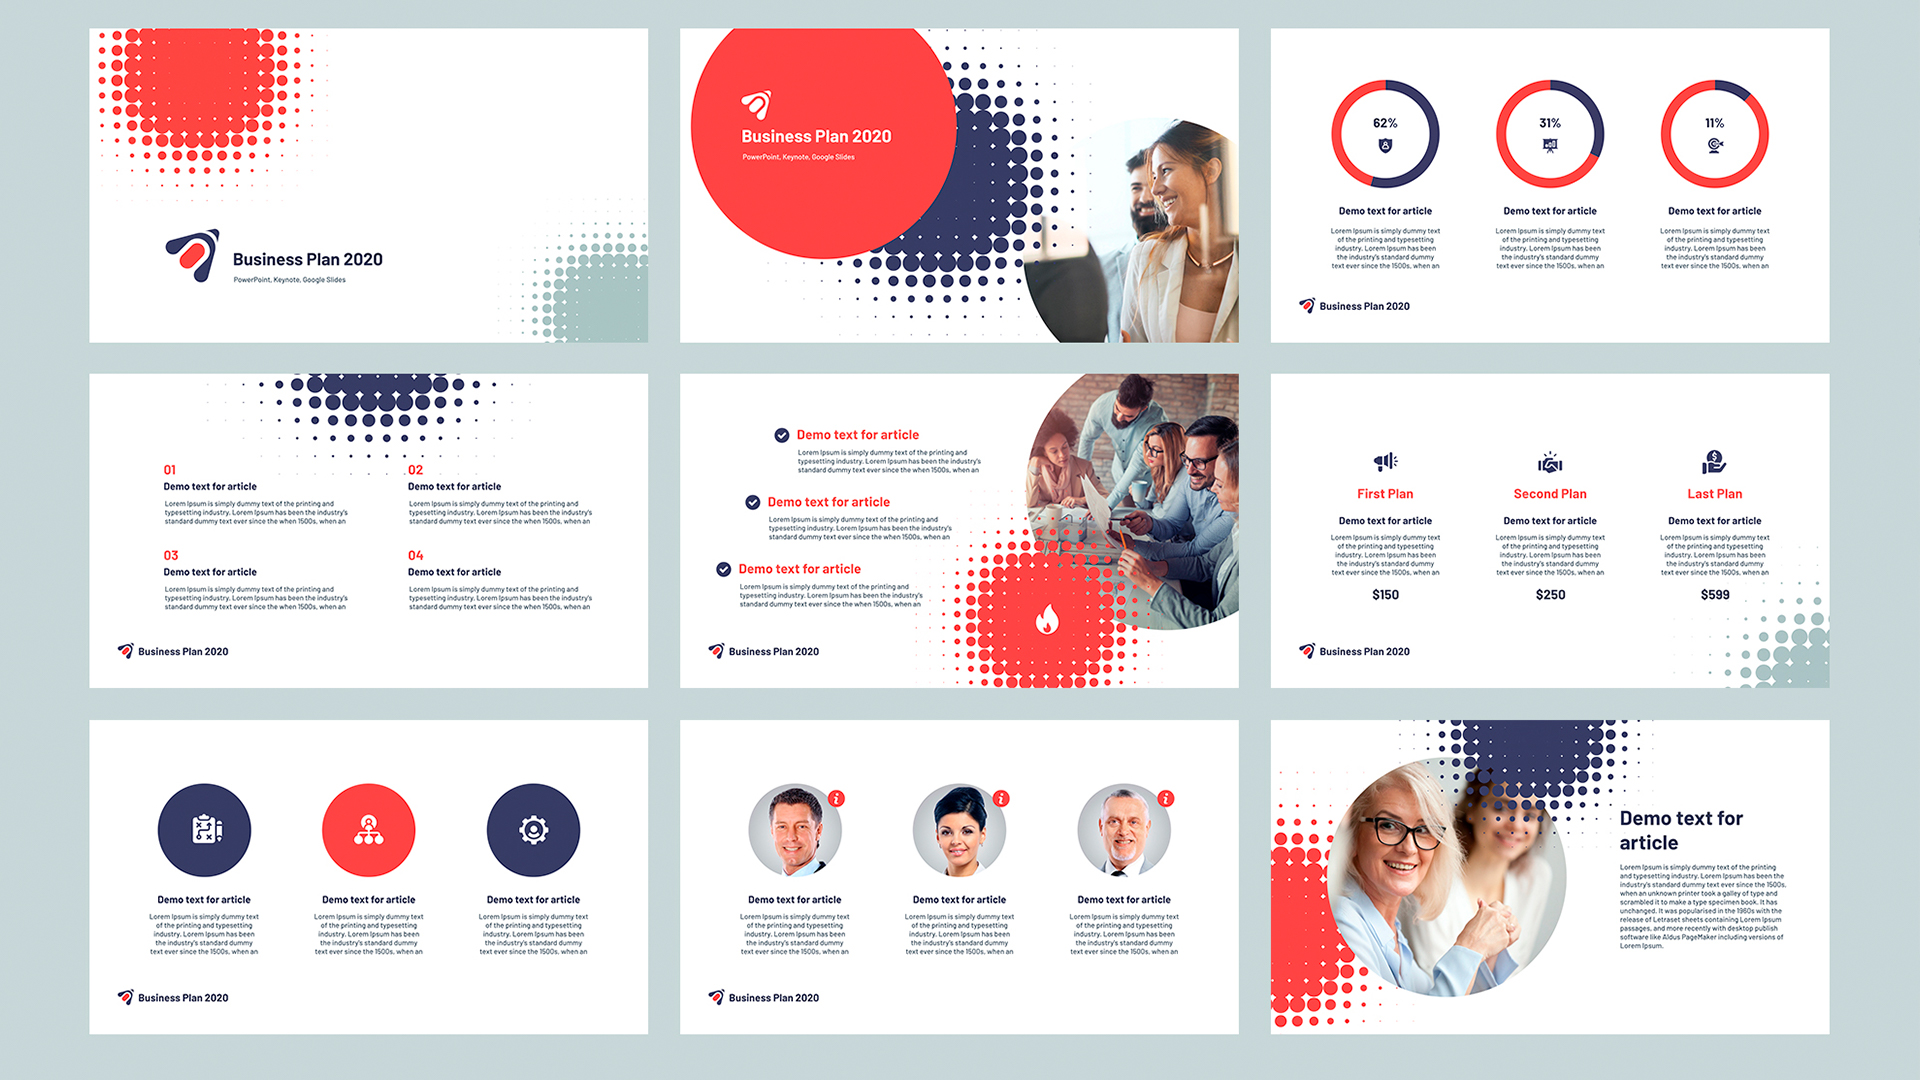 Business plan presentation template Keynote 2020